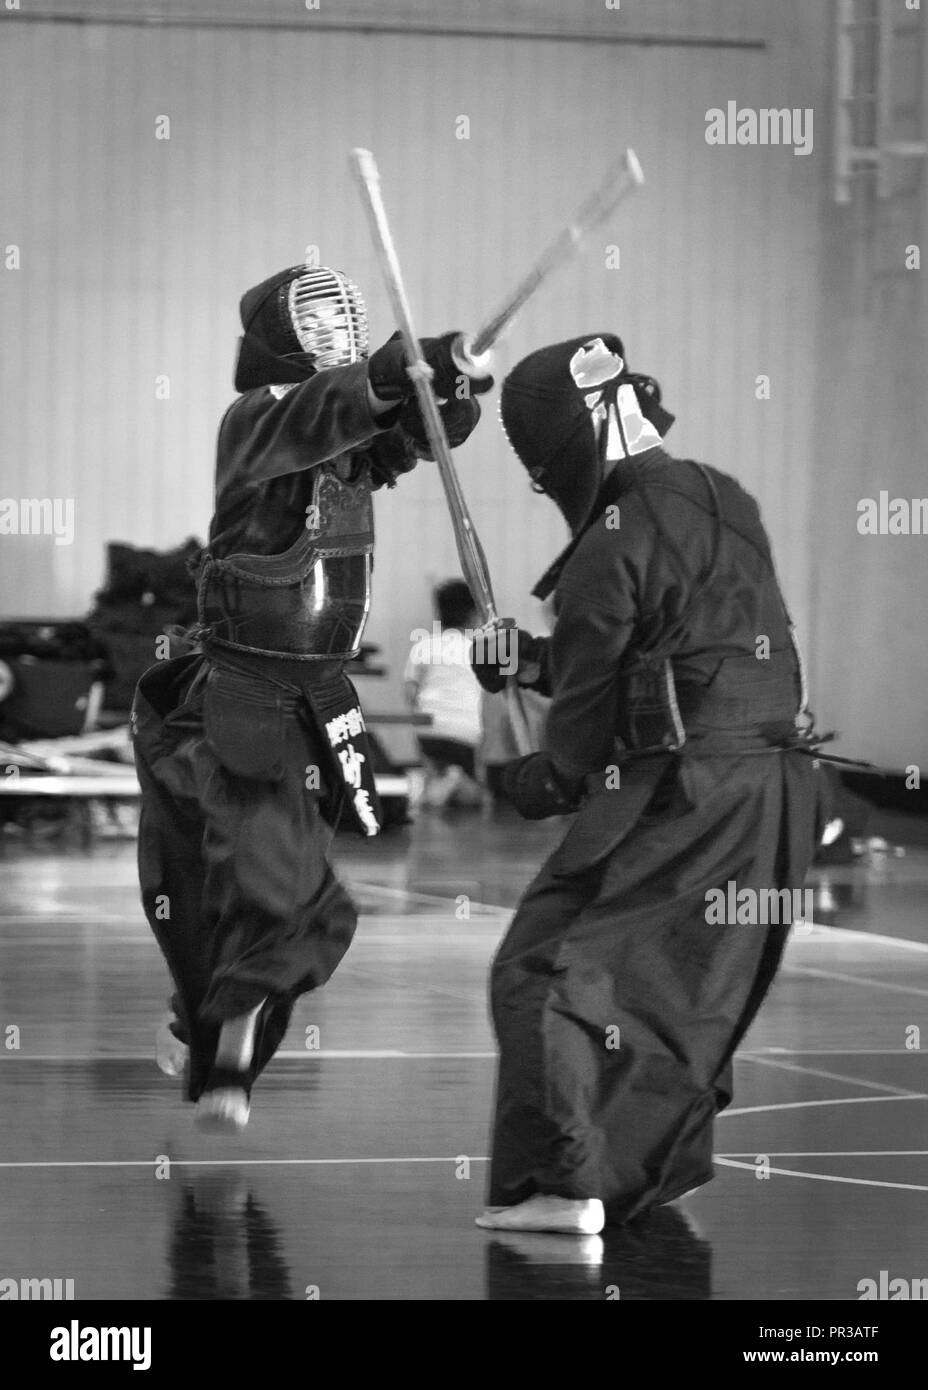 A kendo practitioner strikes his opponent's head during the Kendo Club Joint Summer Camp at Yokota Air Base, Japan, July 29, 2017. Yokota Kendo Club has practiced every Saturday for about 25 years. Kazuto Miura, headmaster of Keitenkan Dojo in Akishima city, founded Yokota Kendo Club and started to teach kendo on base. Yokota Kendo Club and Keitenkan Dojo hold summer camps together annually; this is the sixth time the summer camp has been held on base. - Stock Image